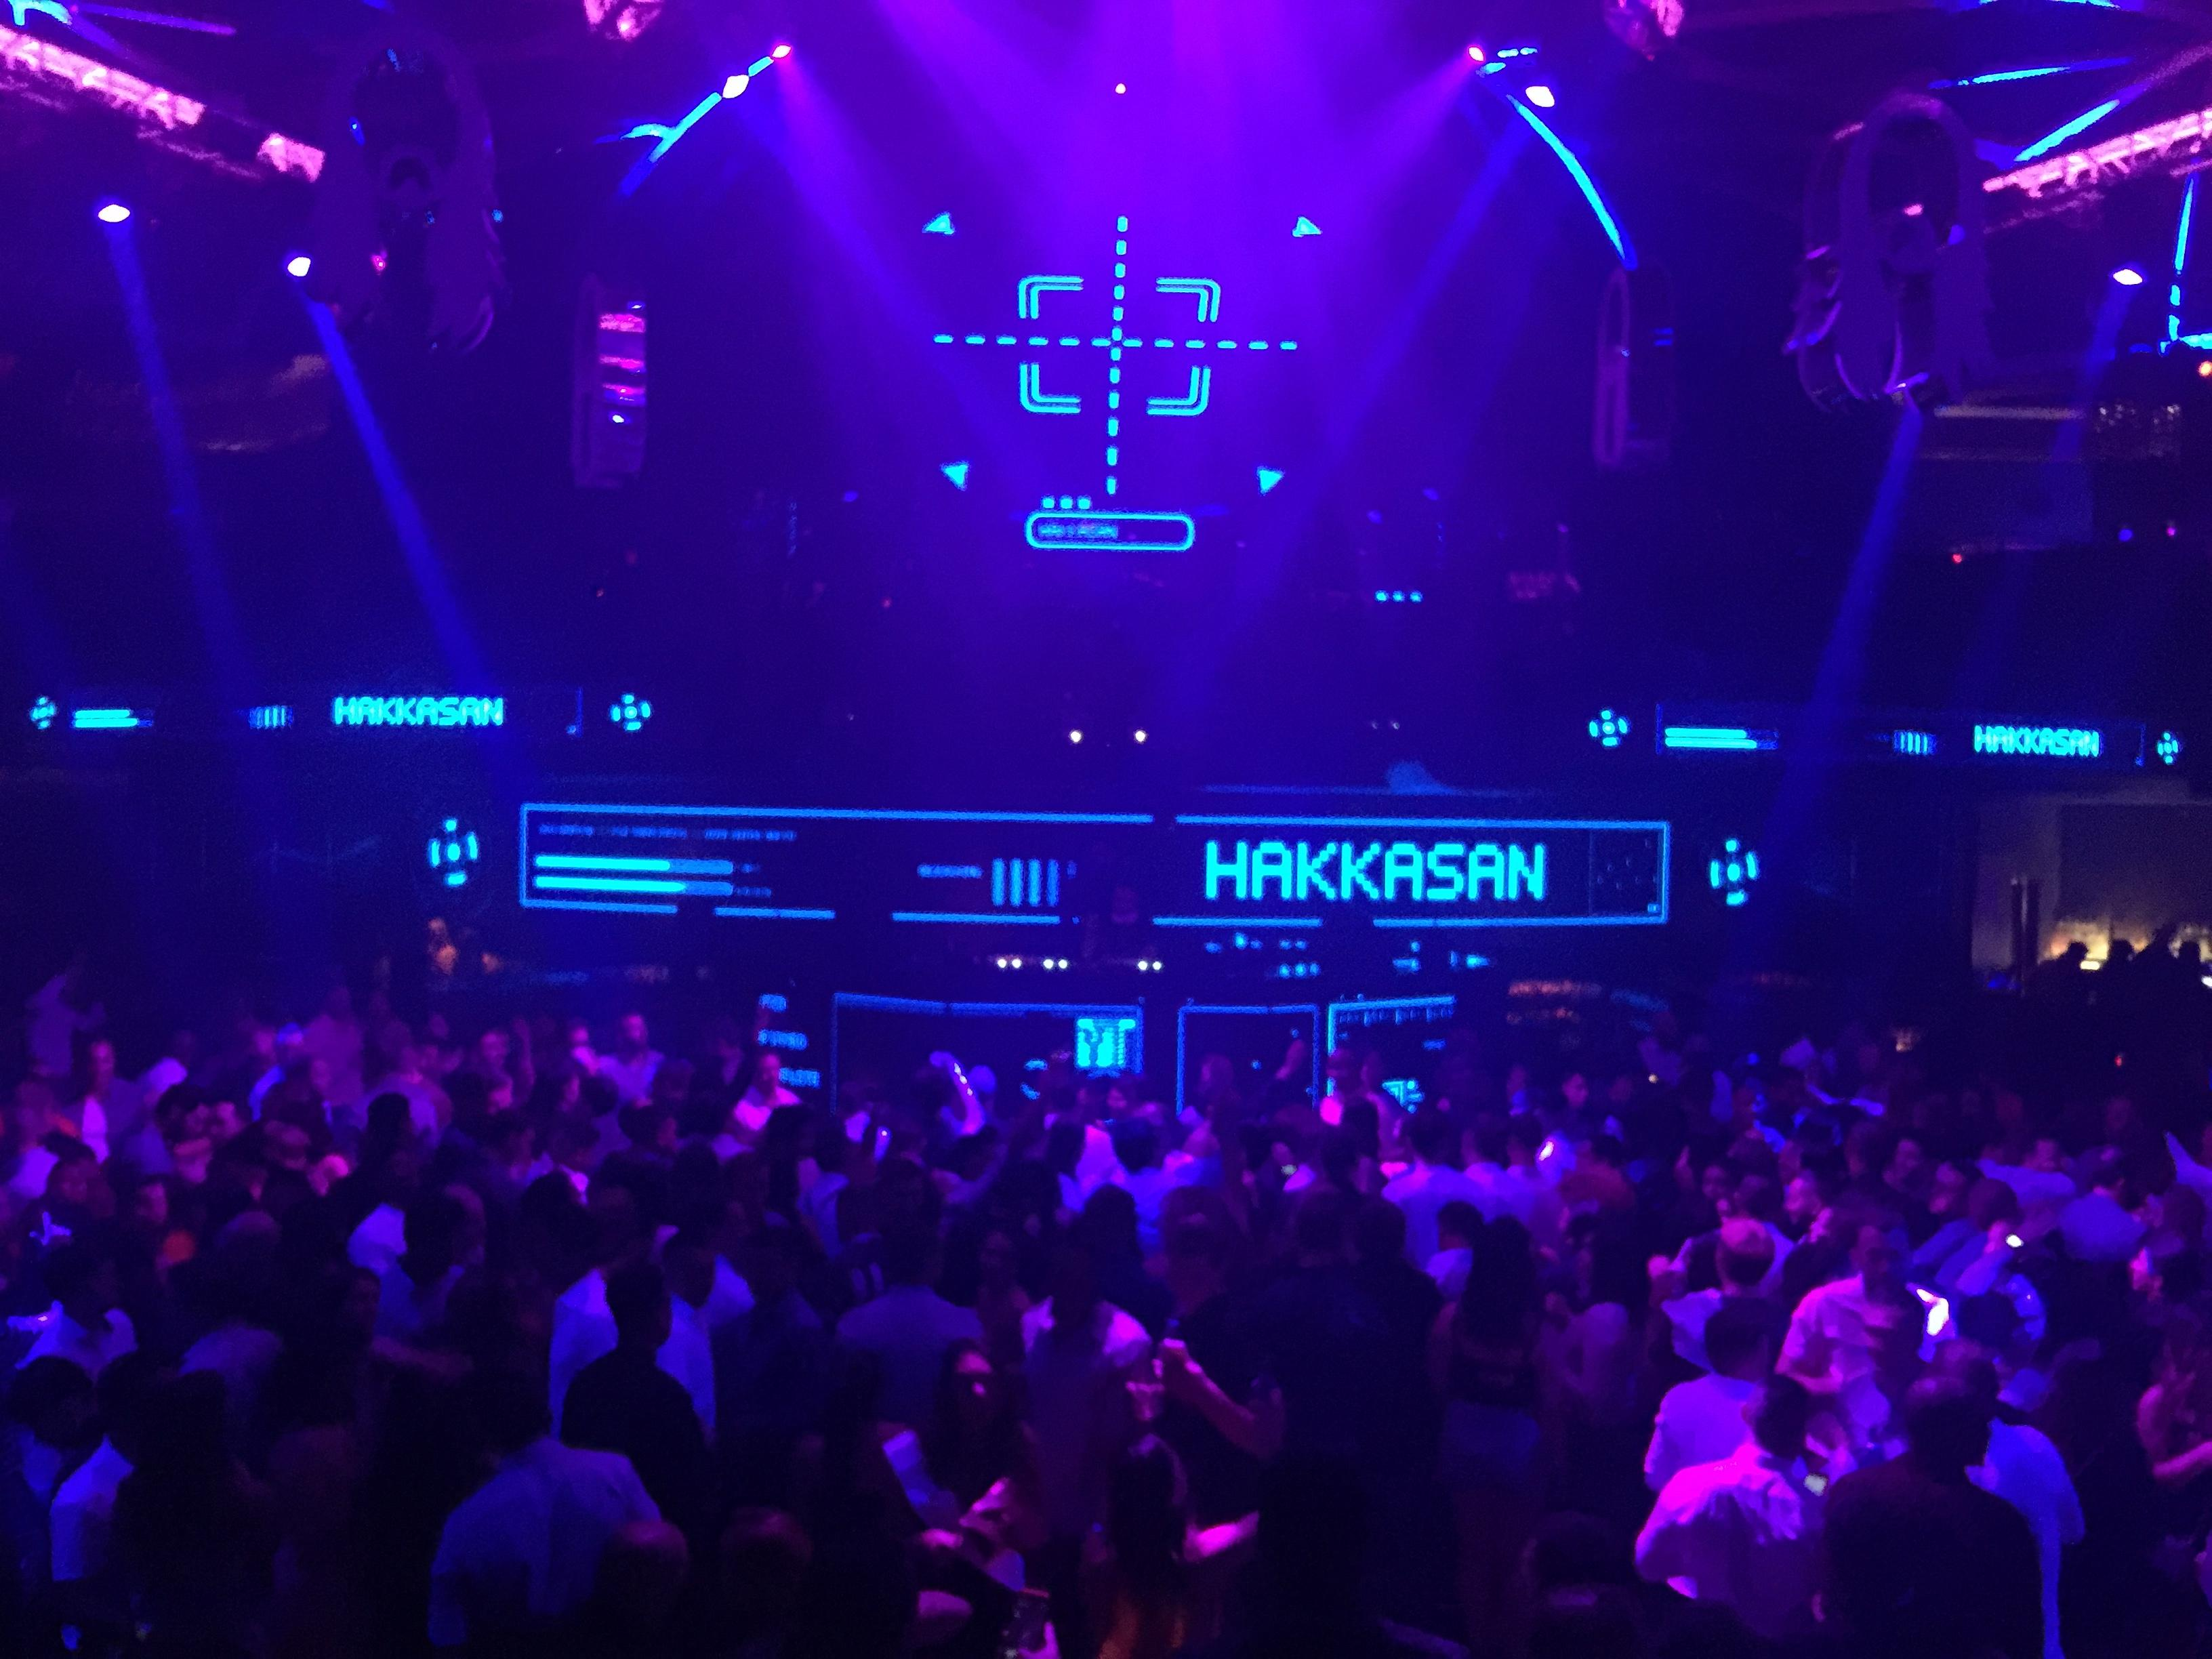 Hakkasan Night Club inside the MGM Grand